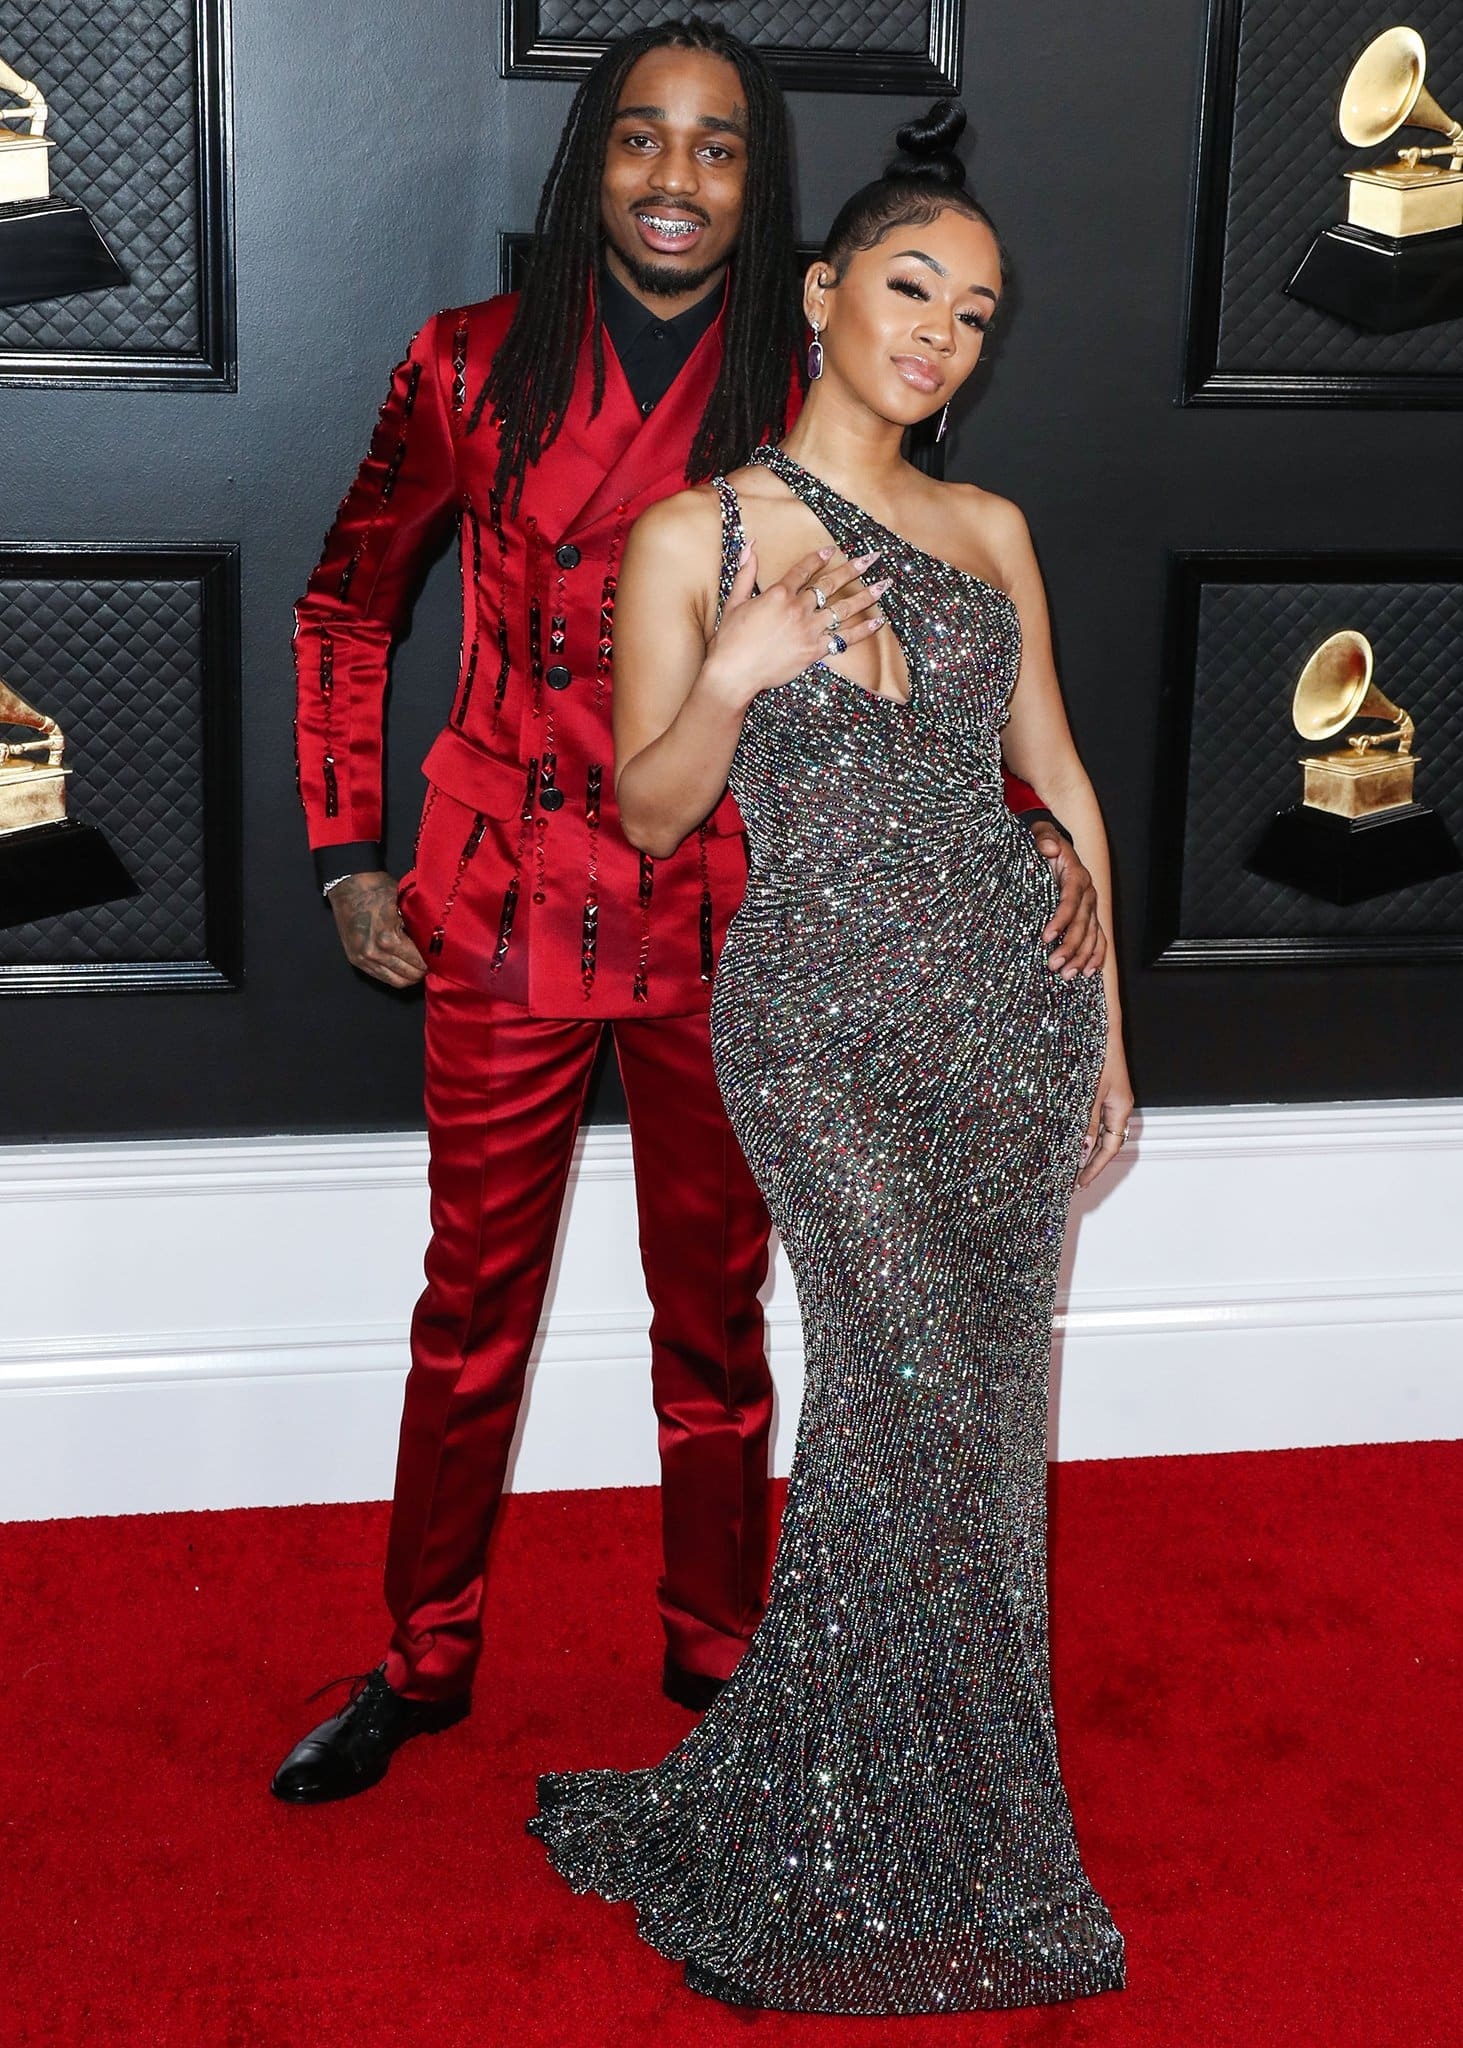 Quavo and Saweetie at the 62nd Annual Grammy Awards on January 26, 2020